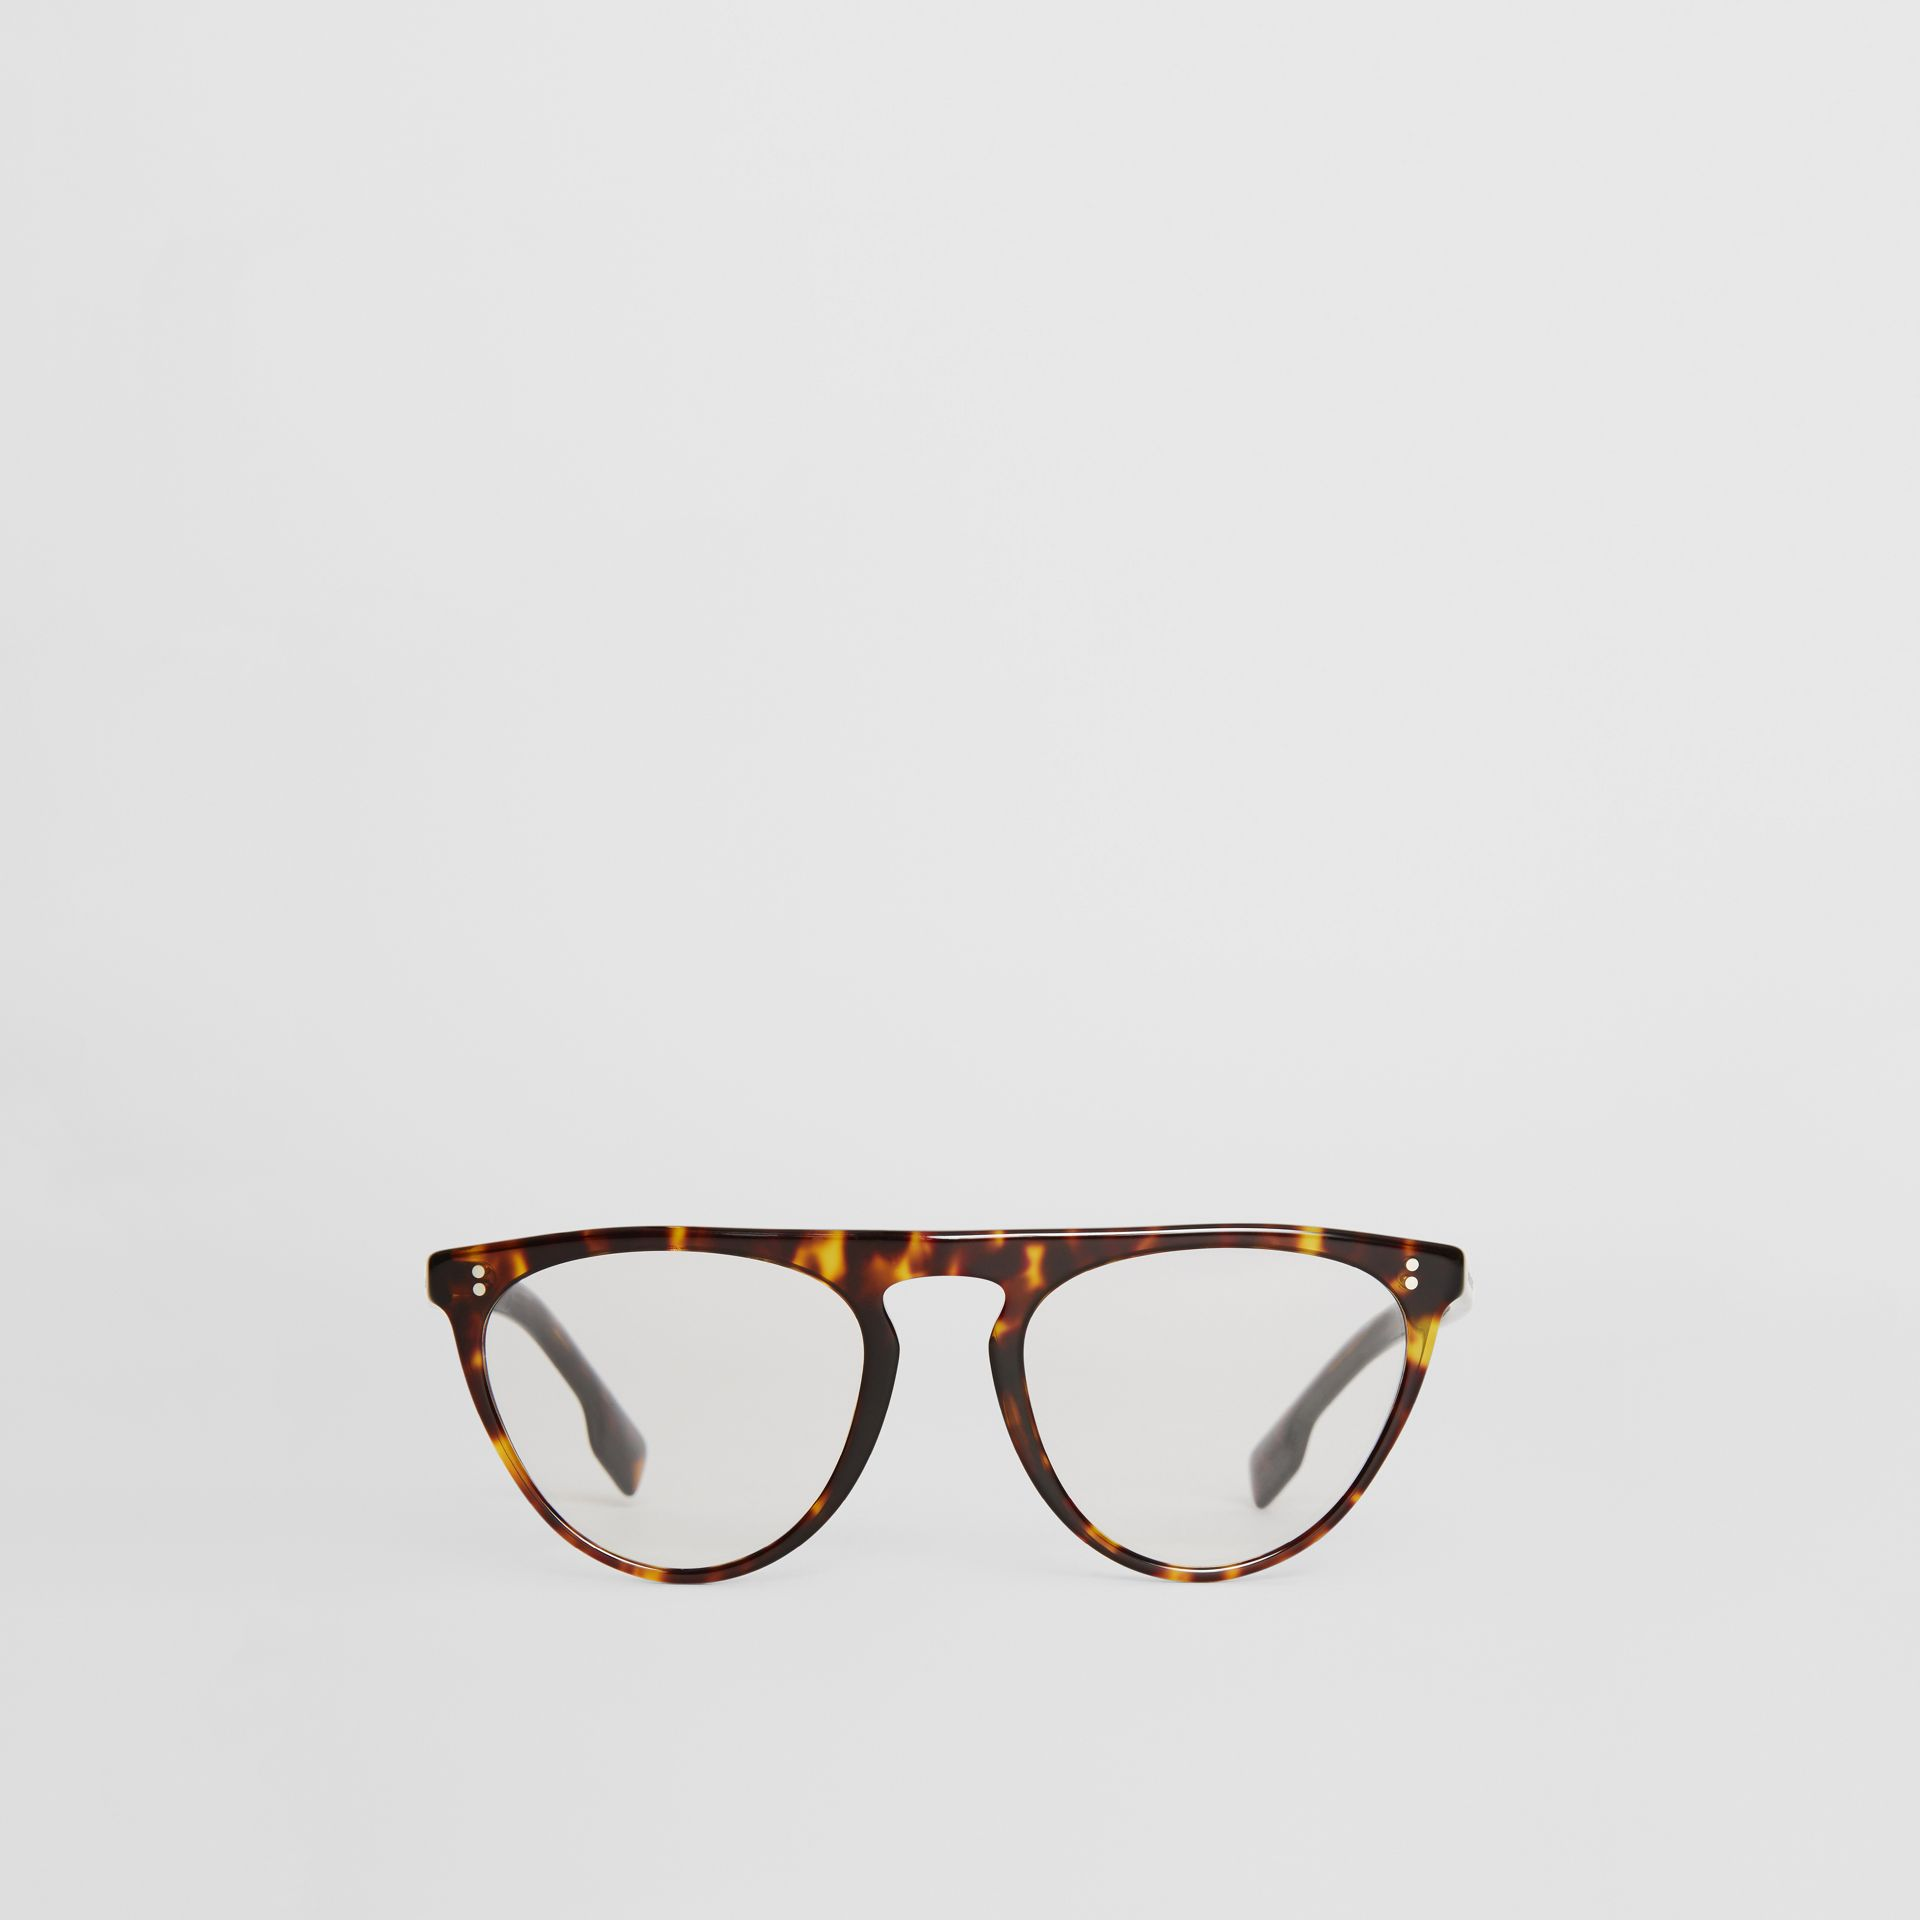 Keyhole D-shaped Optical Frames in Tortoise Shell - Men | Burberry Hong Kong - gallery image 0